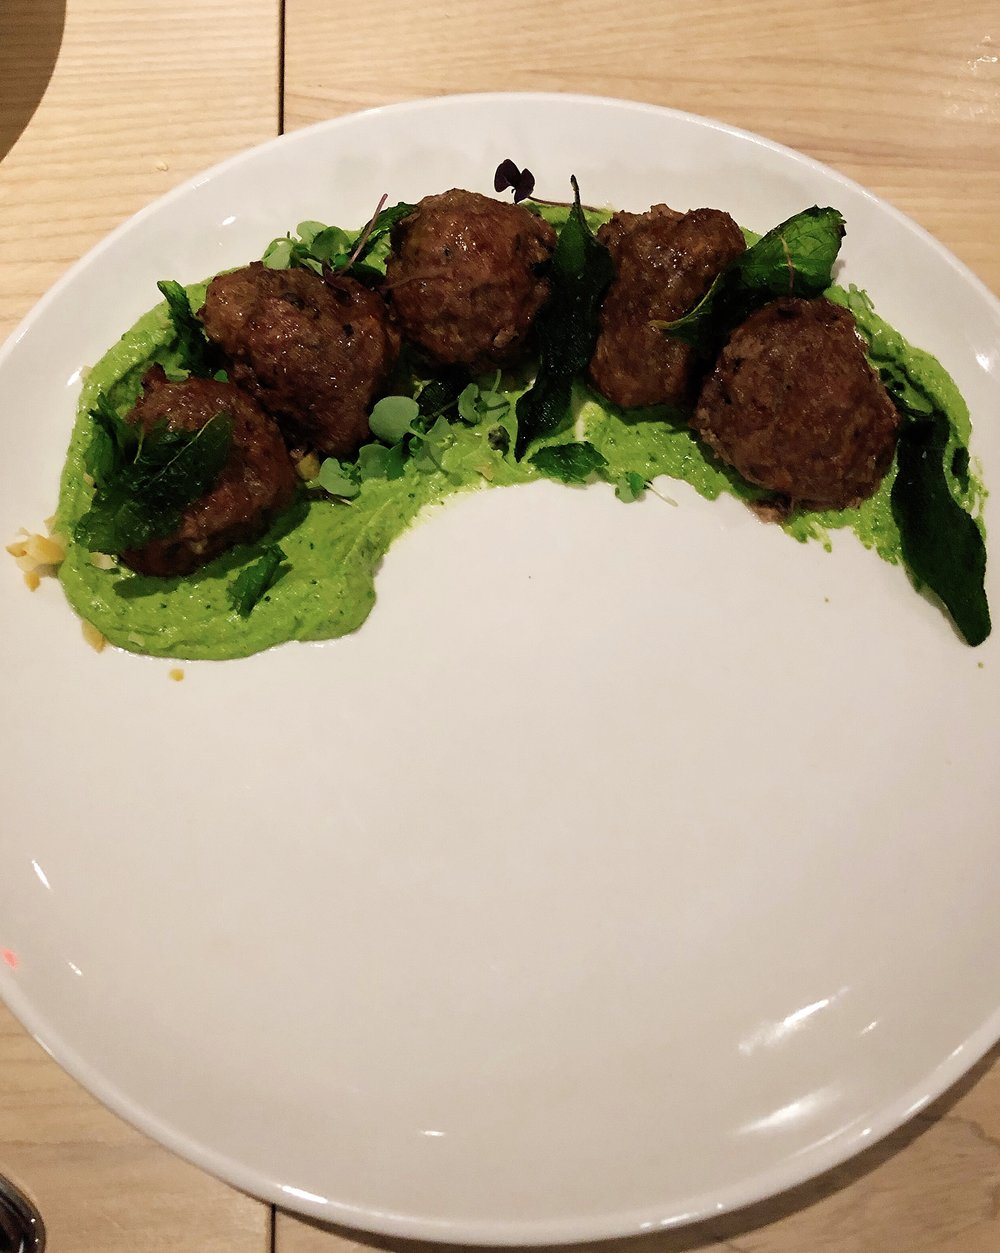 Spicy Lamb, Beef & Pork Meatballs | Mint Pistou +Pequin + Preserved Lemon